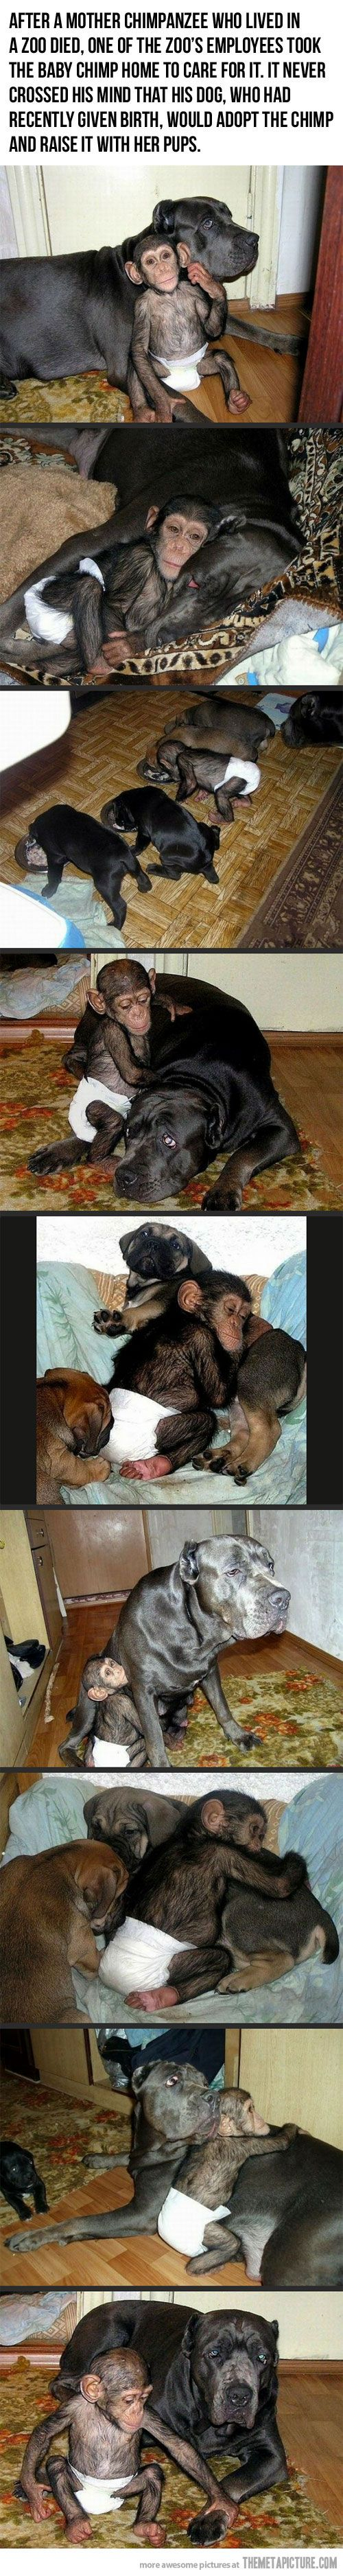 Dog Adopts Baby Chimp - So Sweet